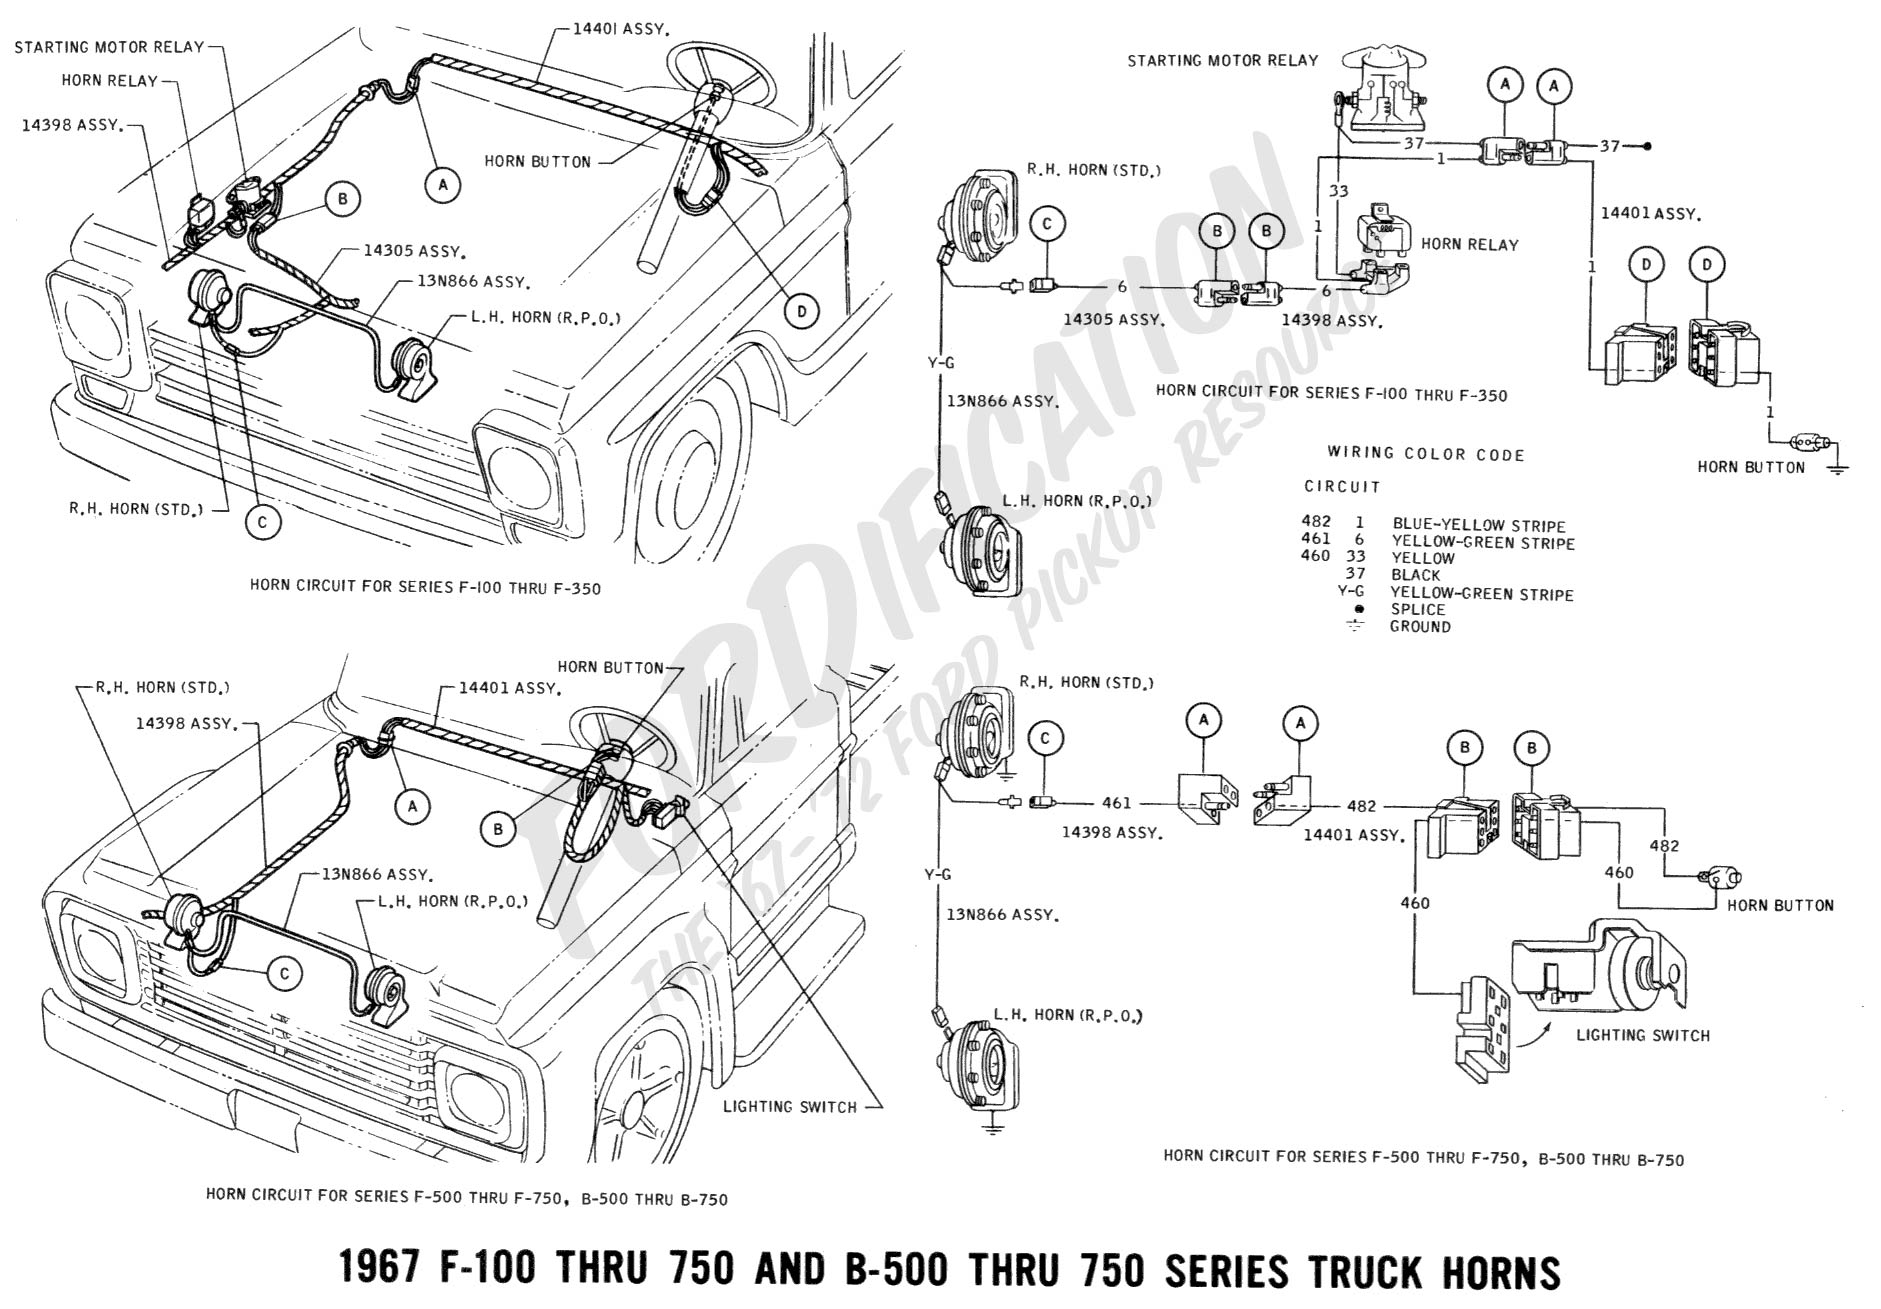 Wiring Diagram For Under The Hood On 69 Camaro